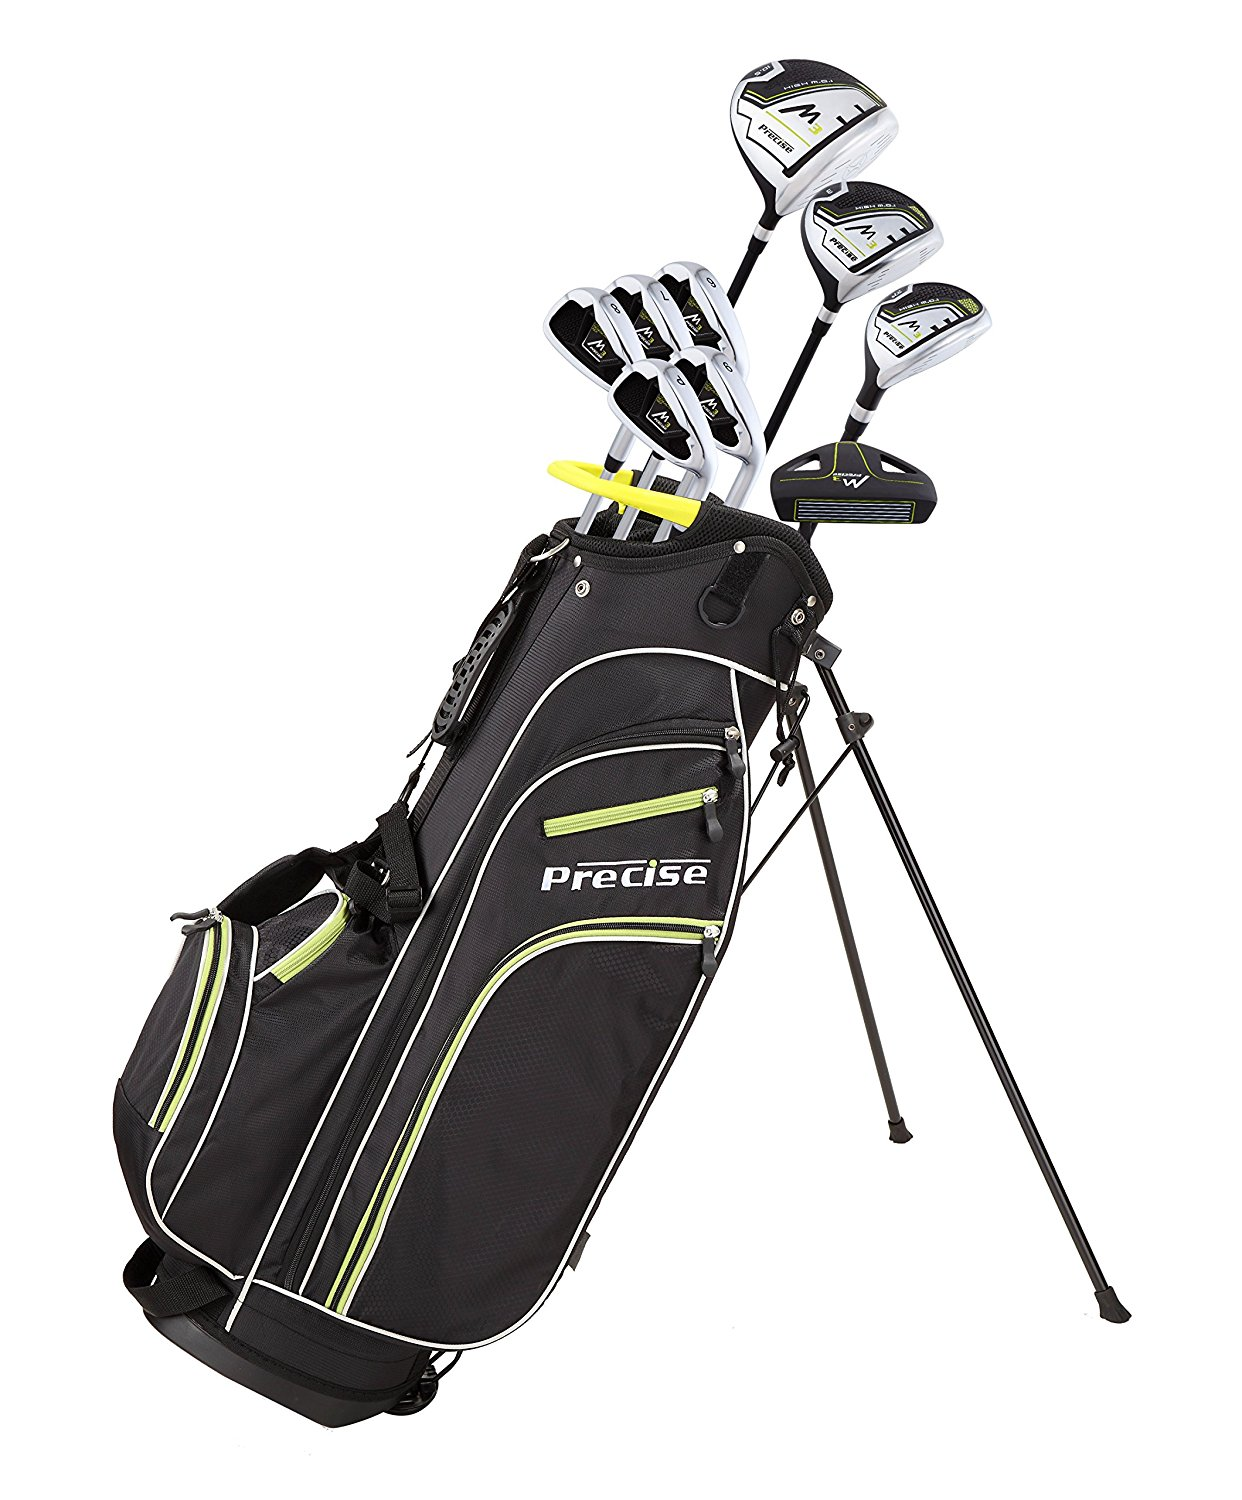 Precise Quality Men's Right Handed Complete Golf Club Set for Tall Men (Height 6'1 to 6'4) Includes: 460cc Driver, 3 Wood, 21 Hybrid, 6, 7, 8, 9, PW Irons, Putter, Deluxe Stand Bag & 3 Headcovers